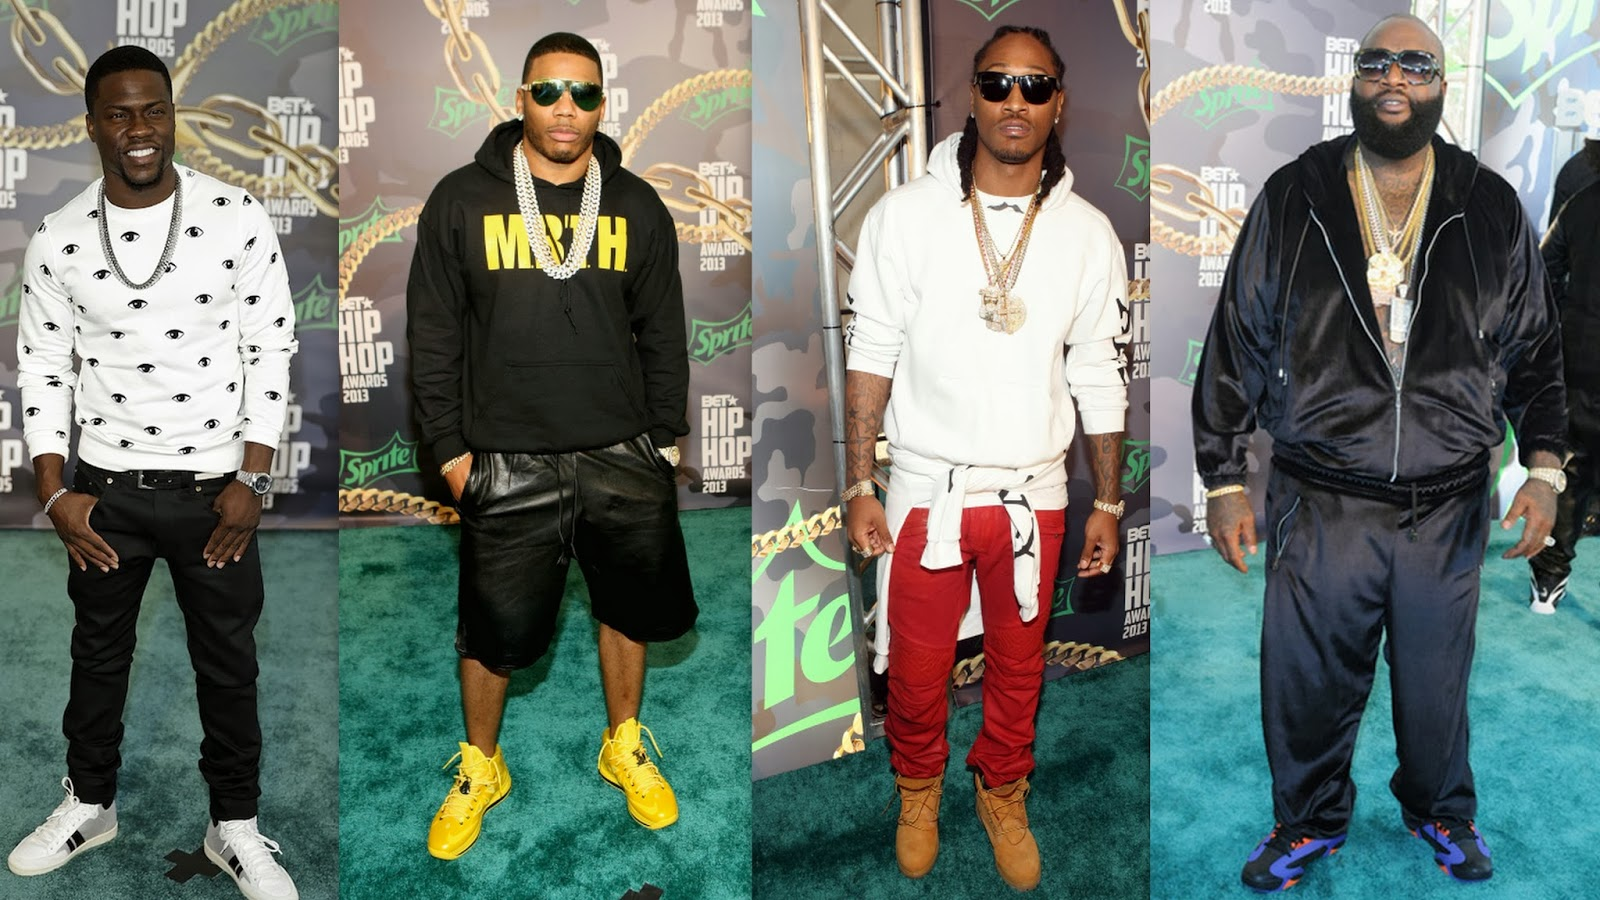 Were Male Celebrities Poorly Dressed For The Bet Hip Hop Awards